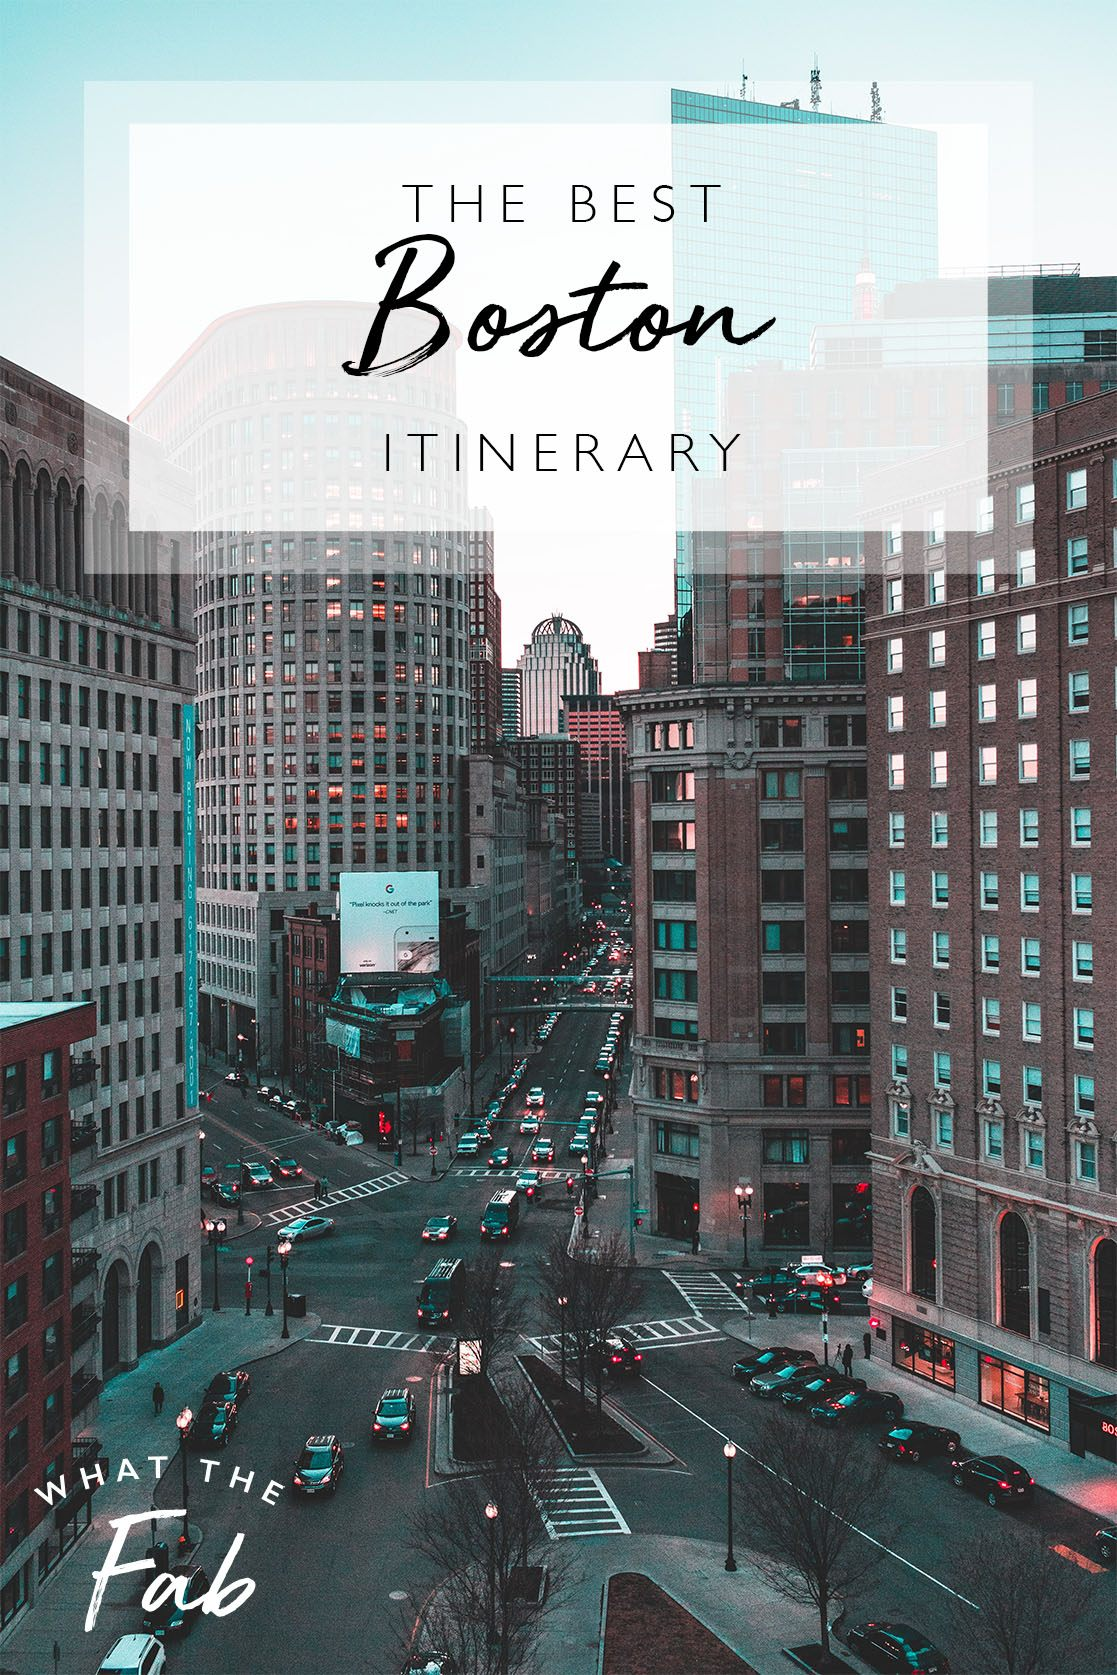 The best Boston itinerary, by travel blogger What The Fab